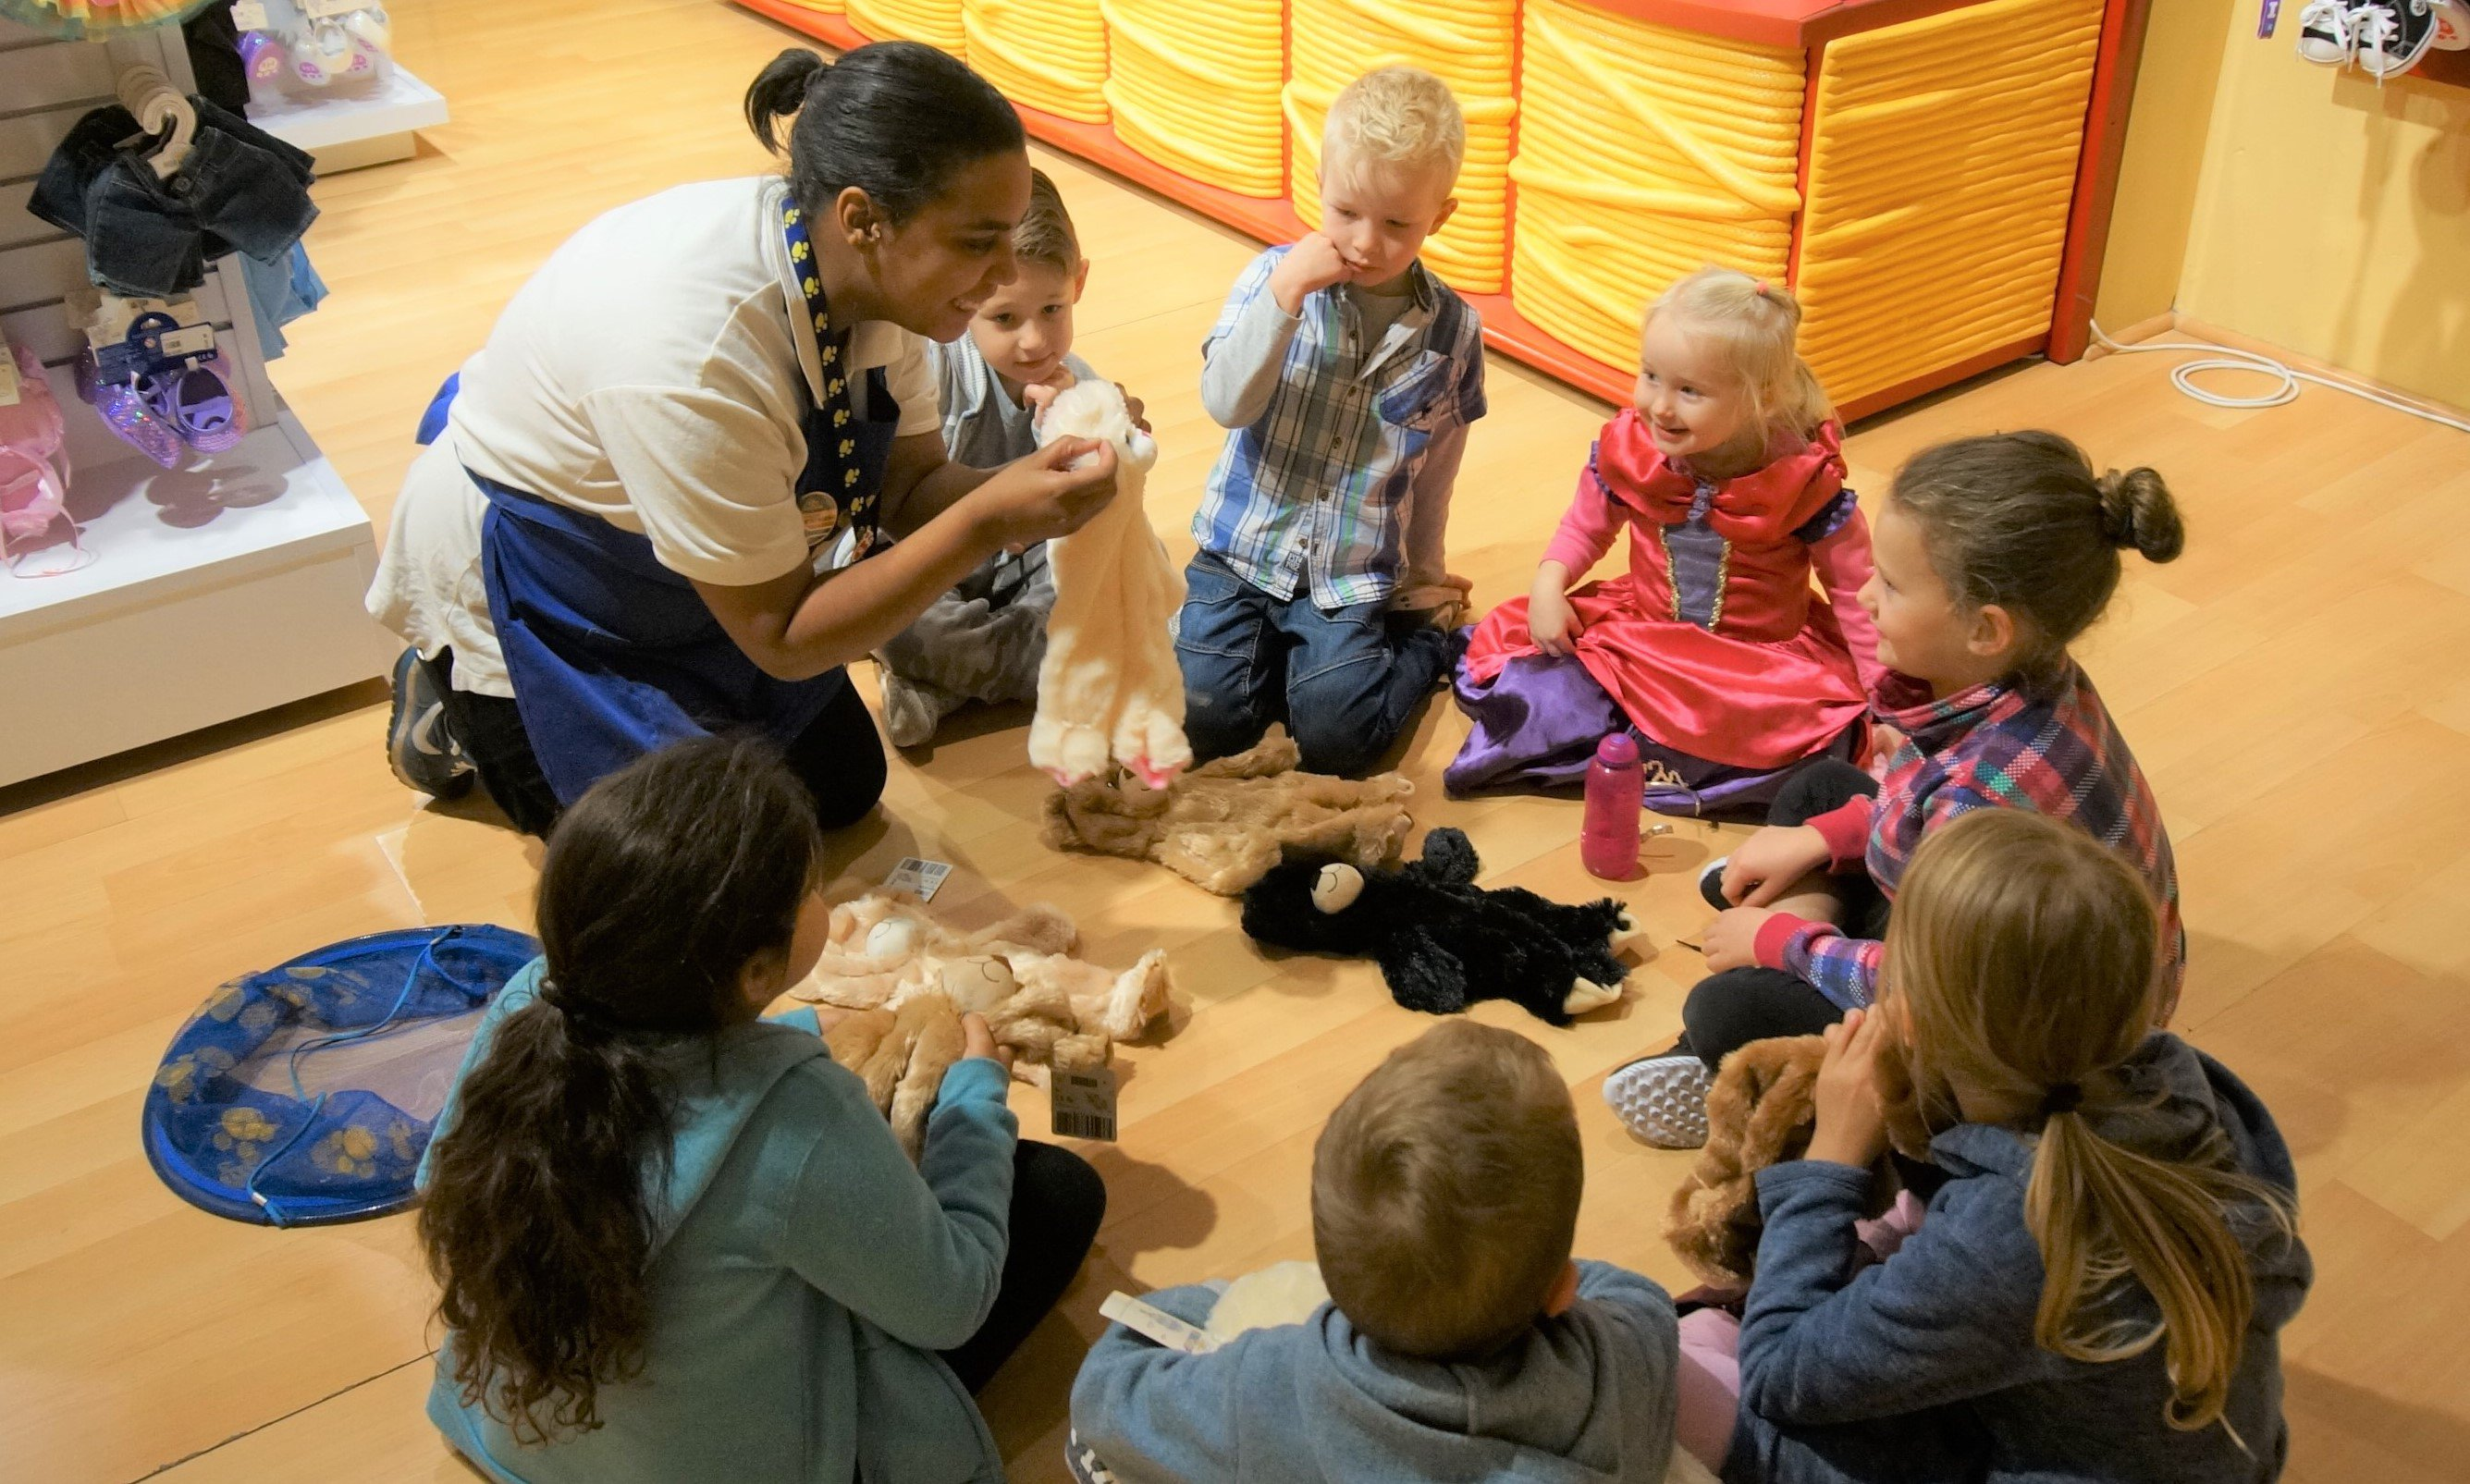 Indoor party inspiration: Try Build-A-Bear Workshops